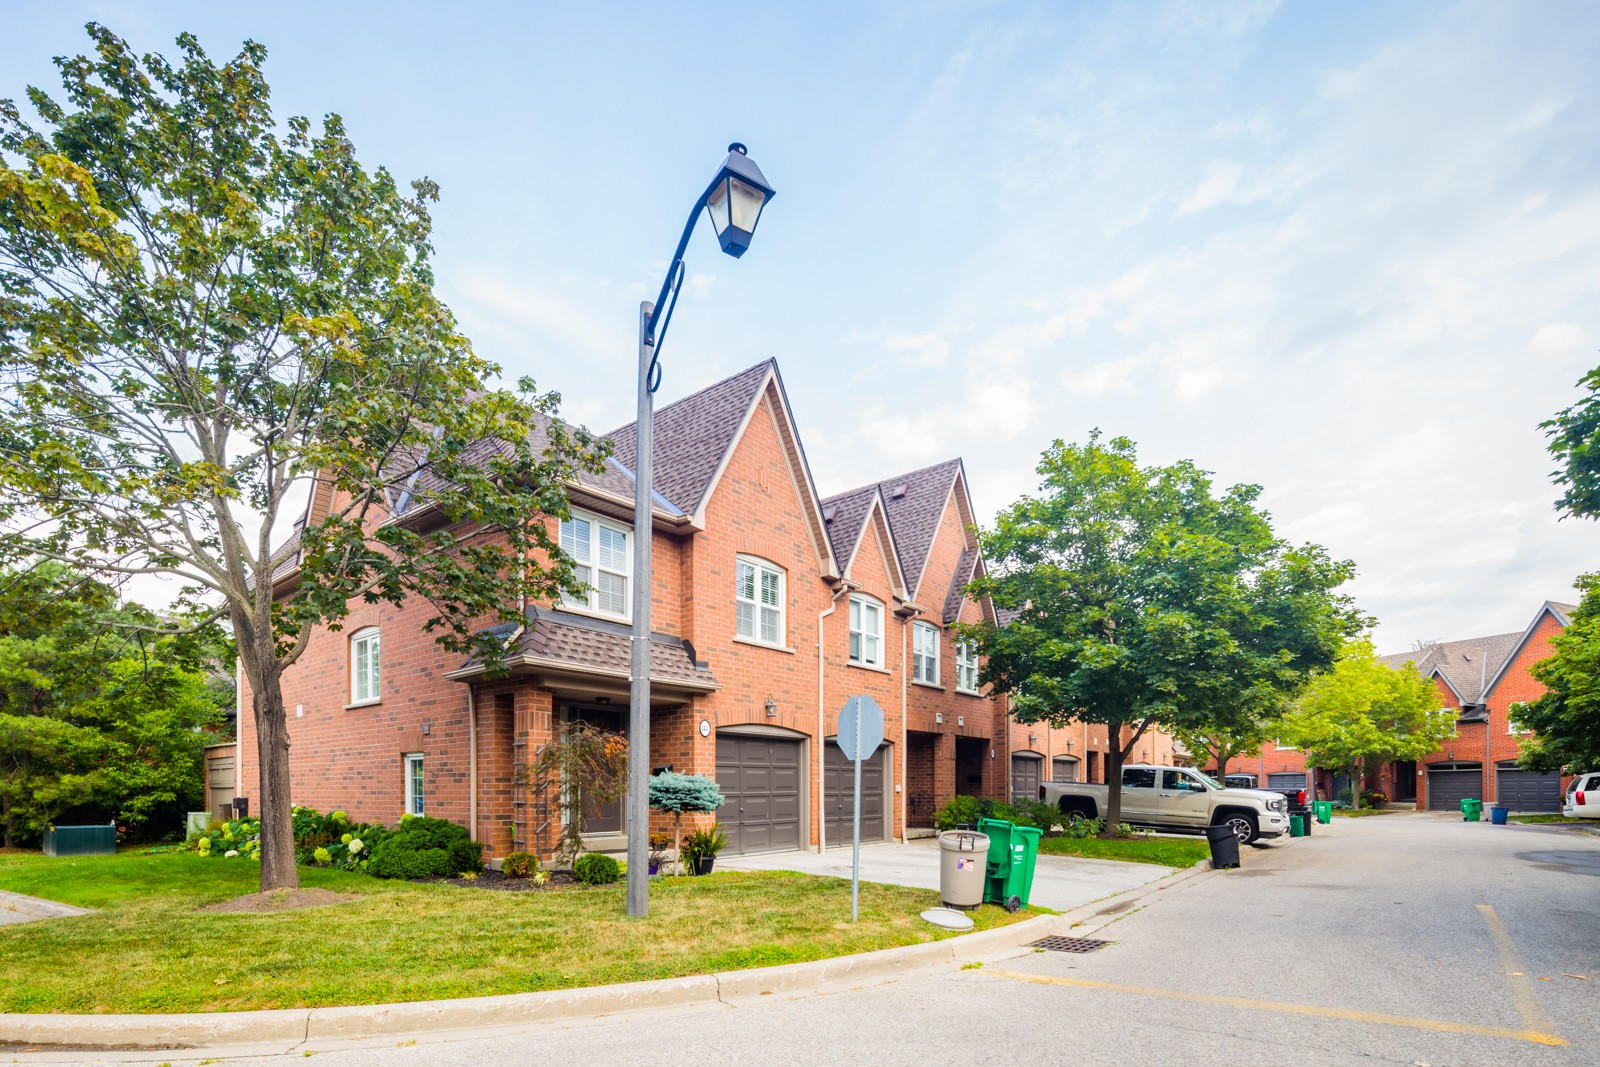 1084 Queen Street West Townhouses at 1084 Queen St W, Mississauga 0